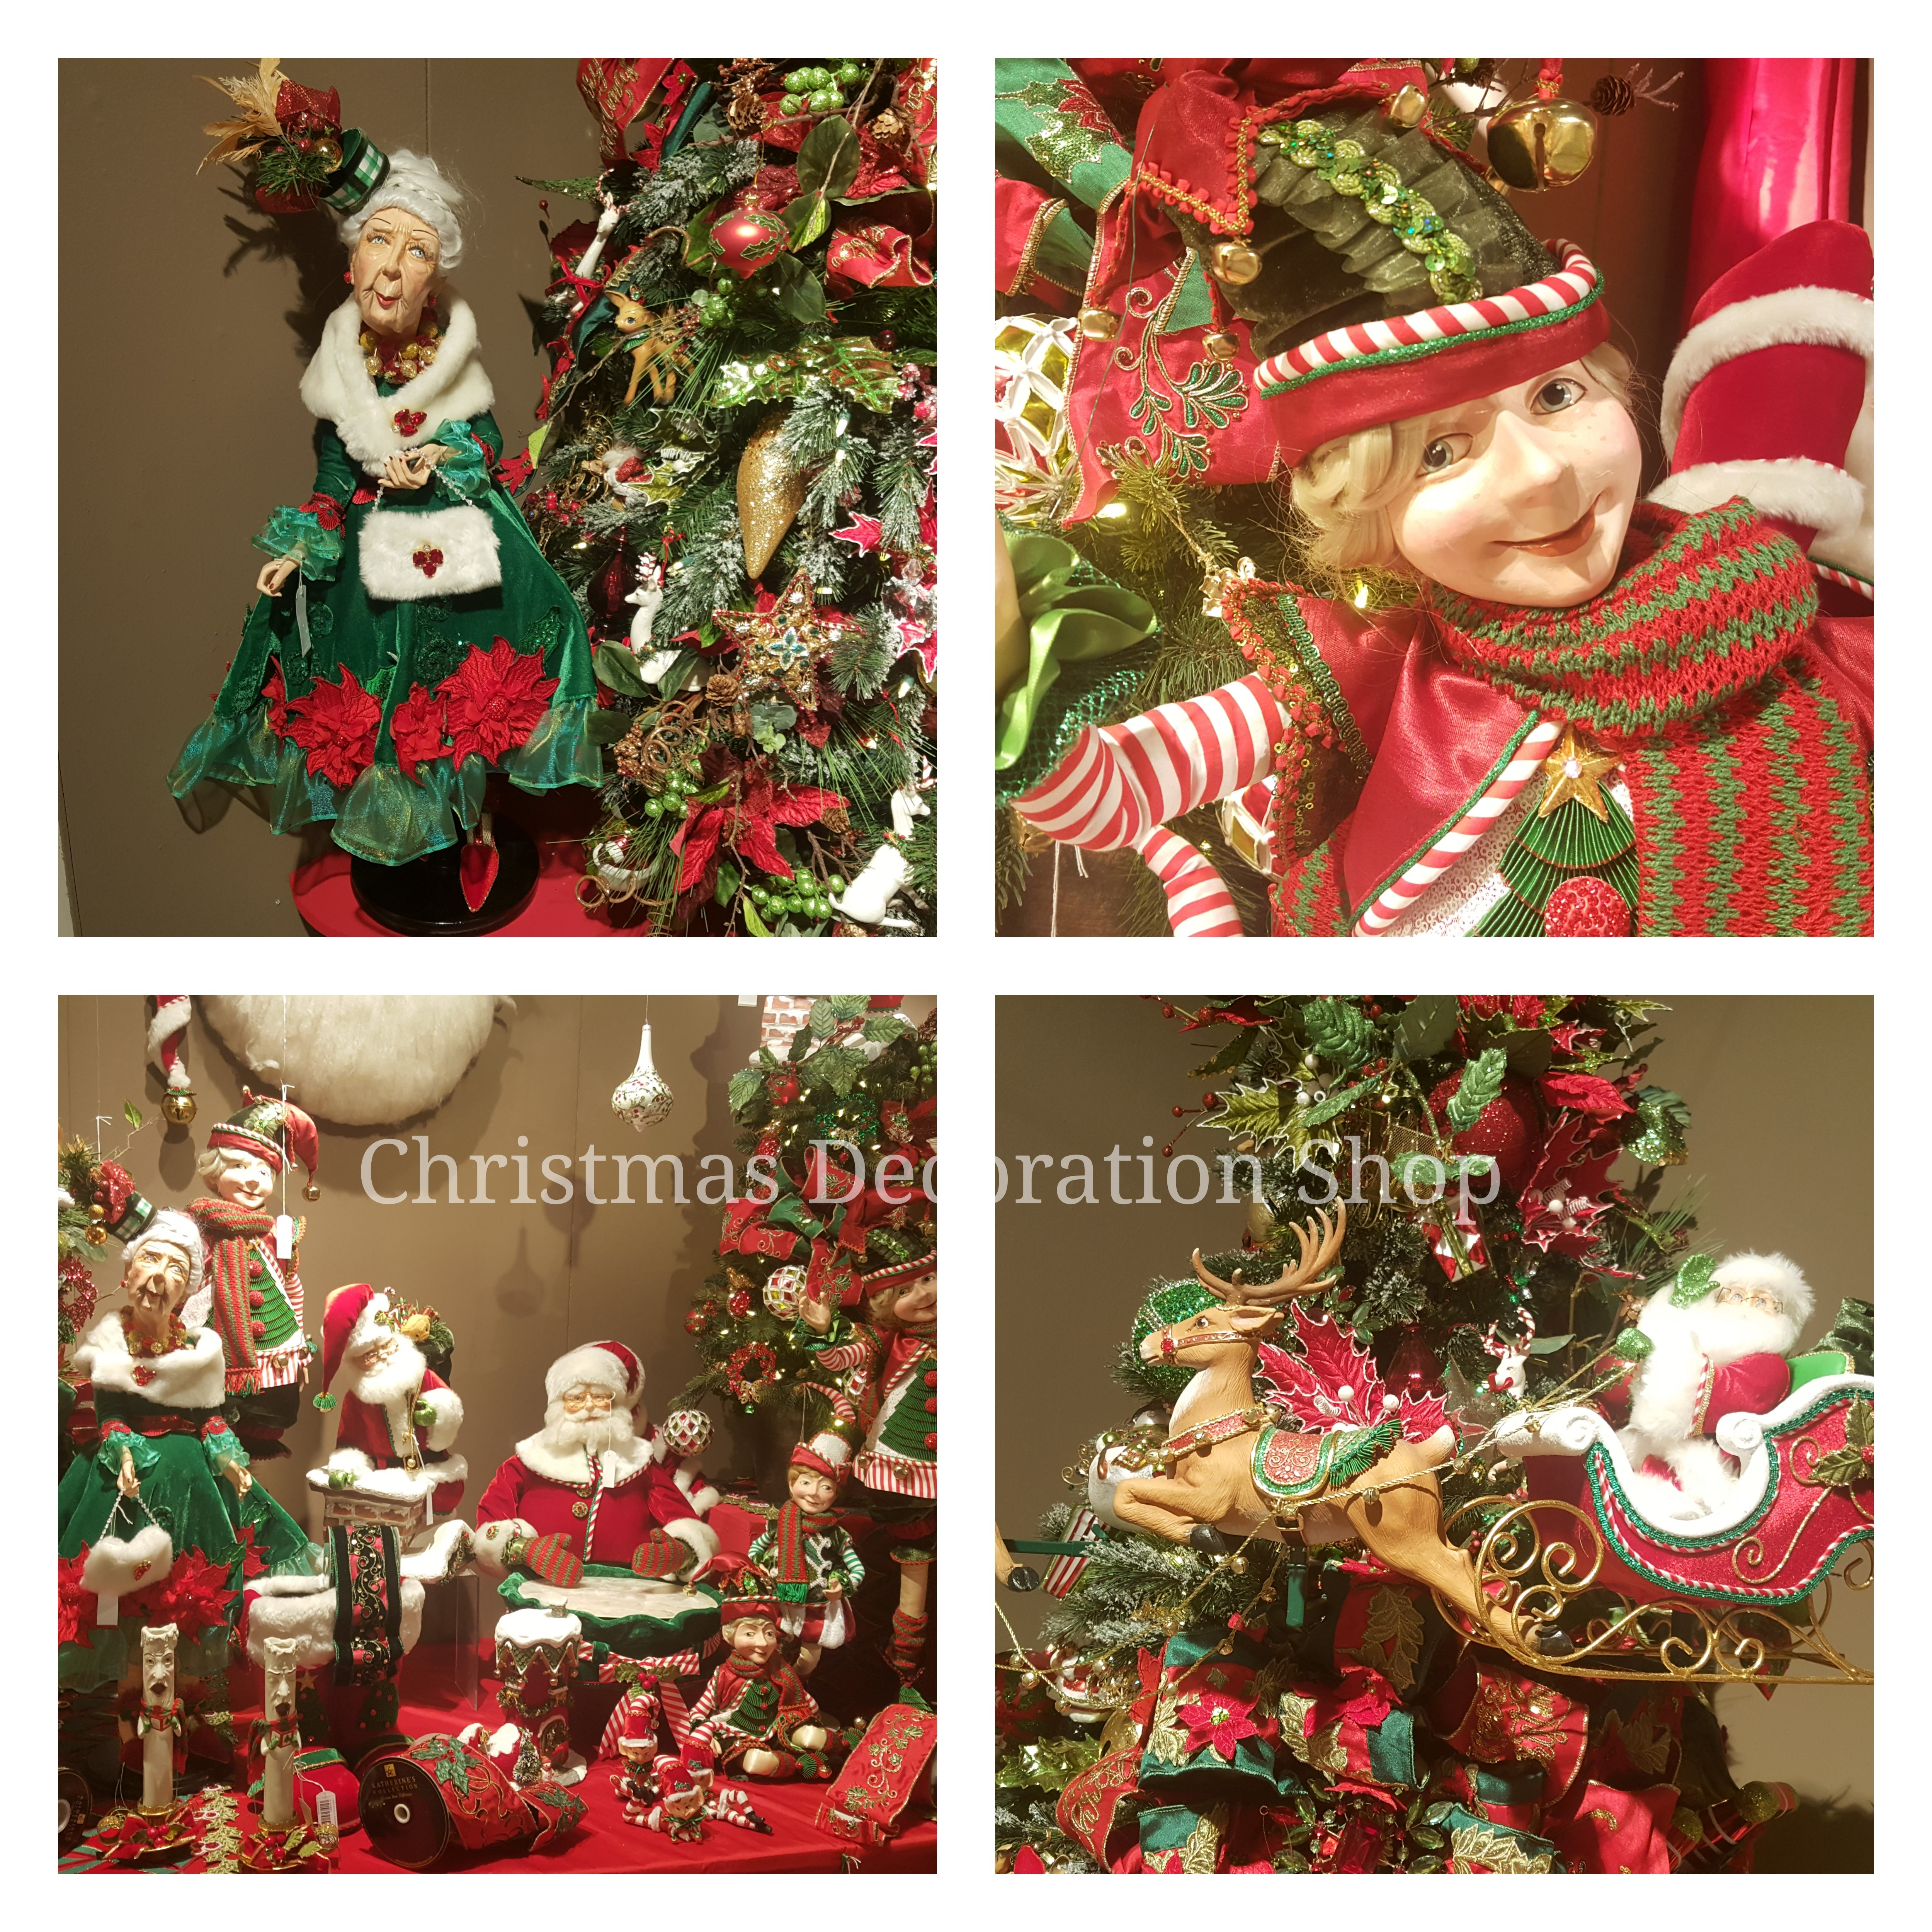 22 Awesome Christmas Figurine Decorations - Style Motivation |Christmas Decorations Online